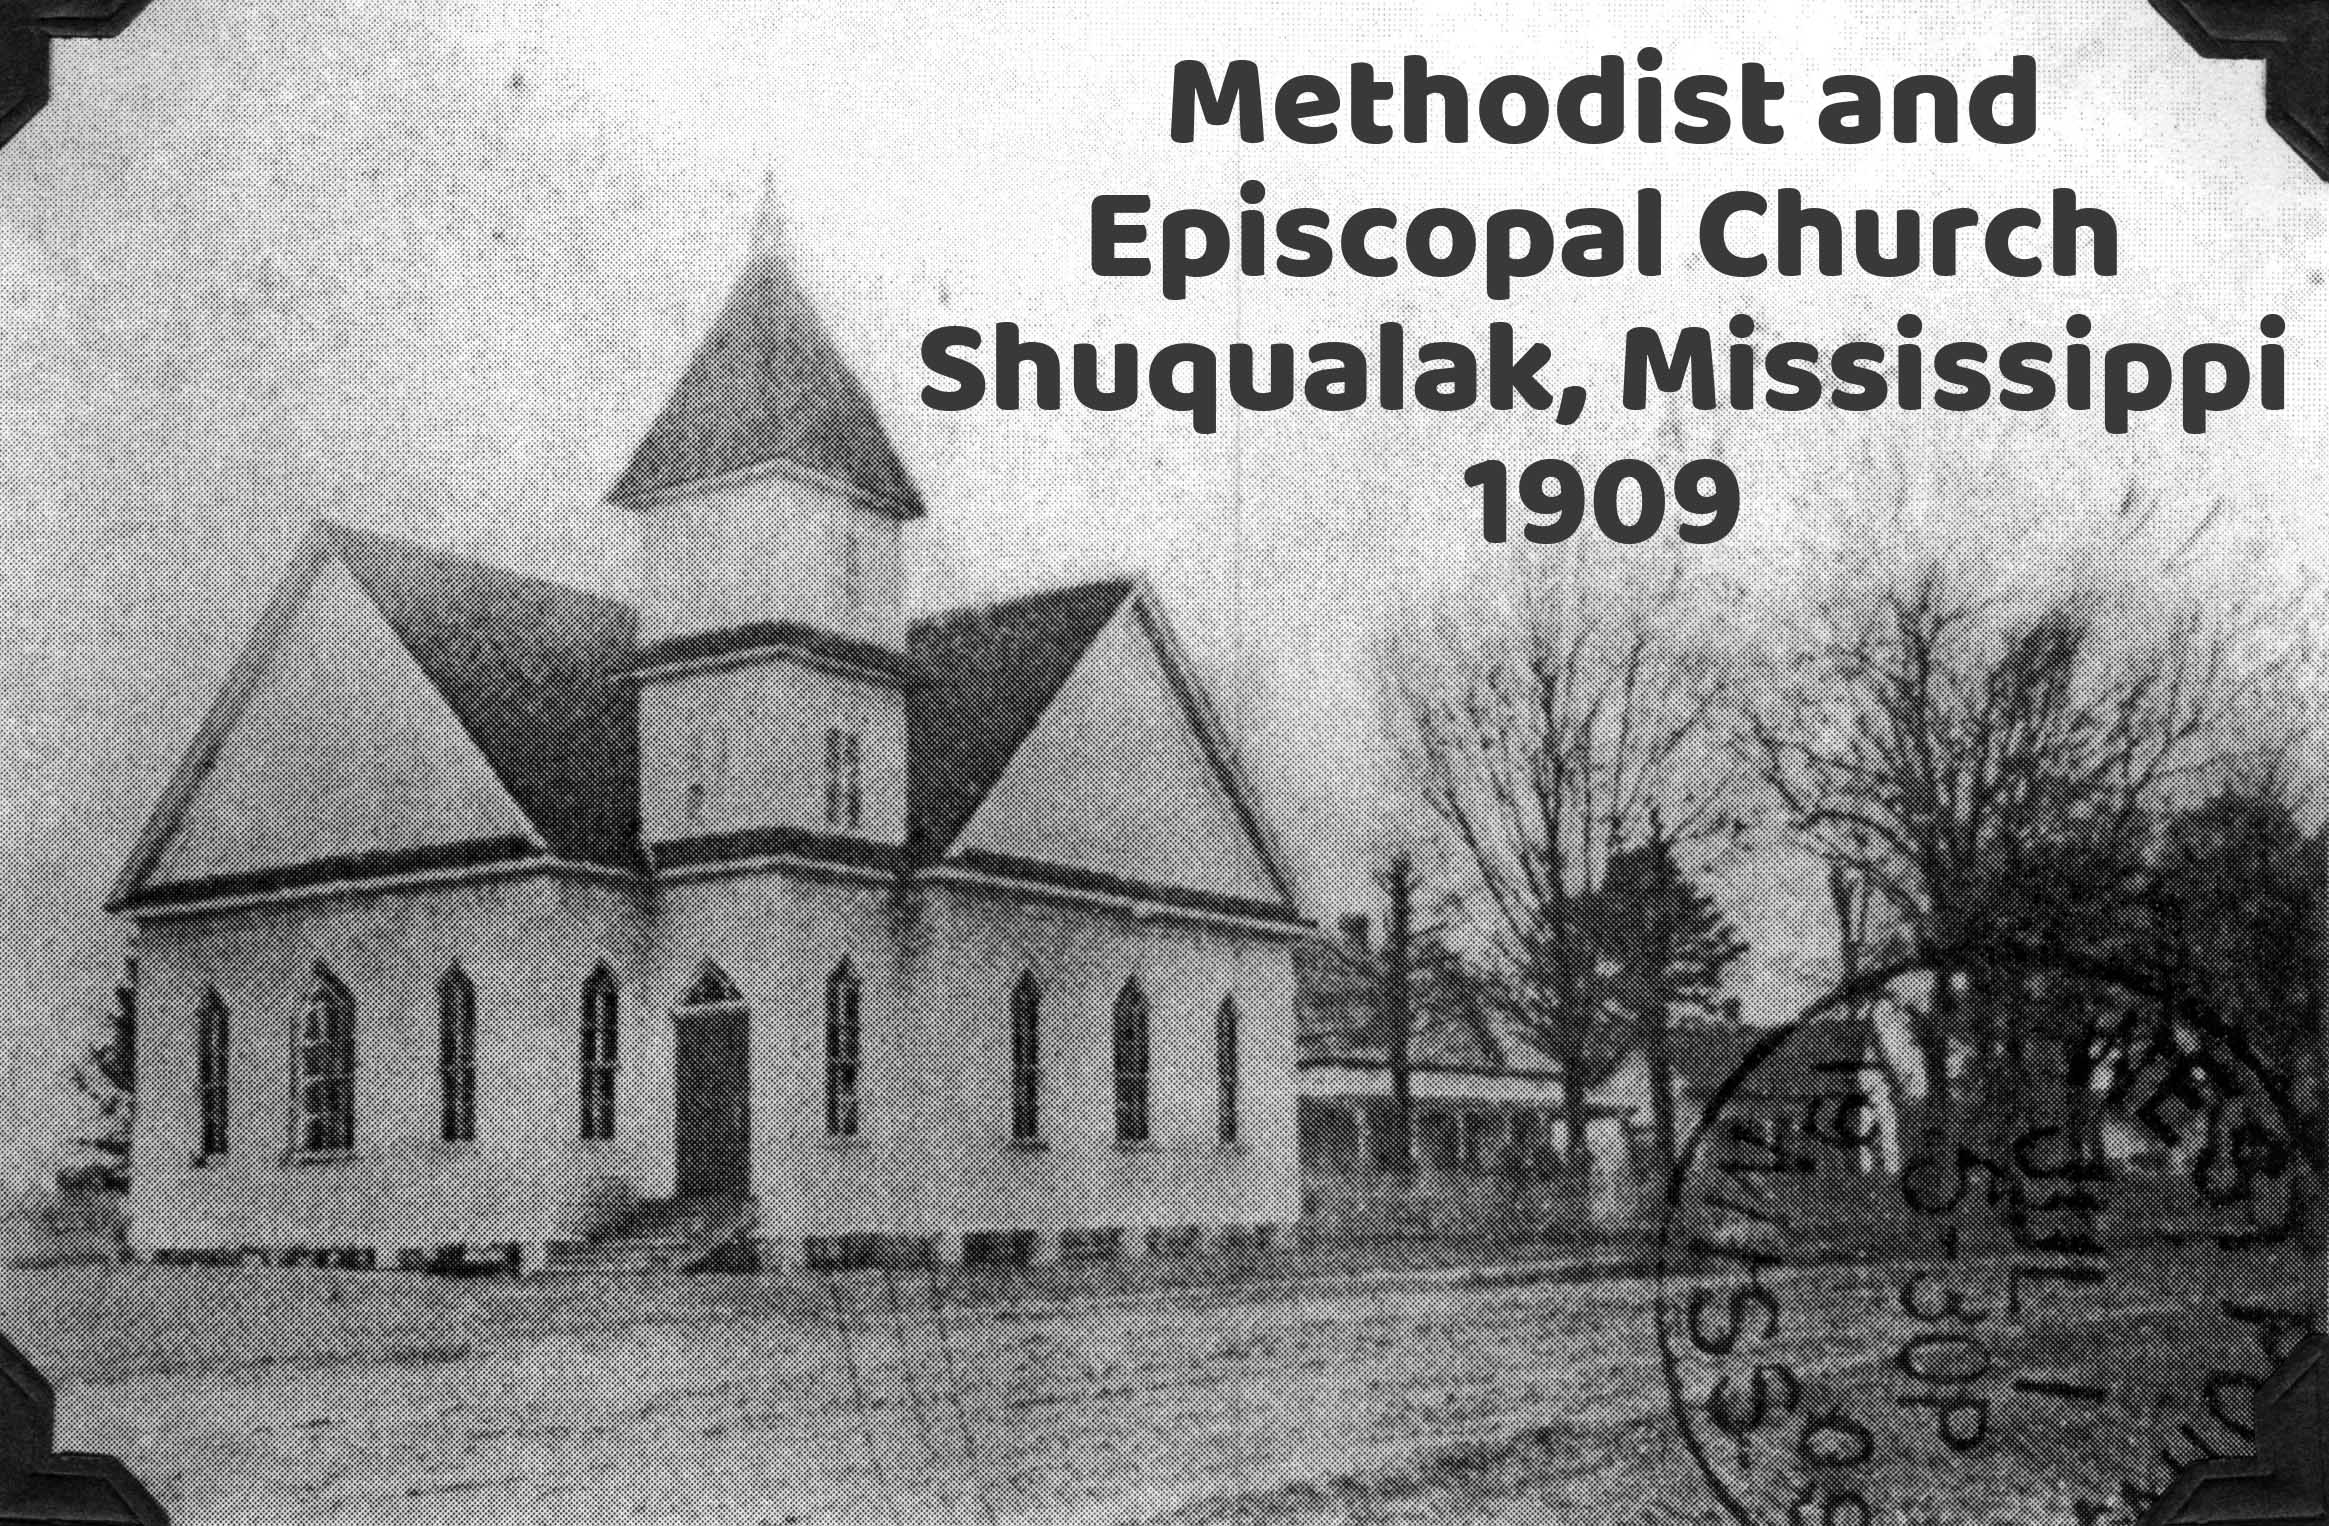 Methodist and Episcopal Church of Shuqualak, Mississippi in 1909